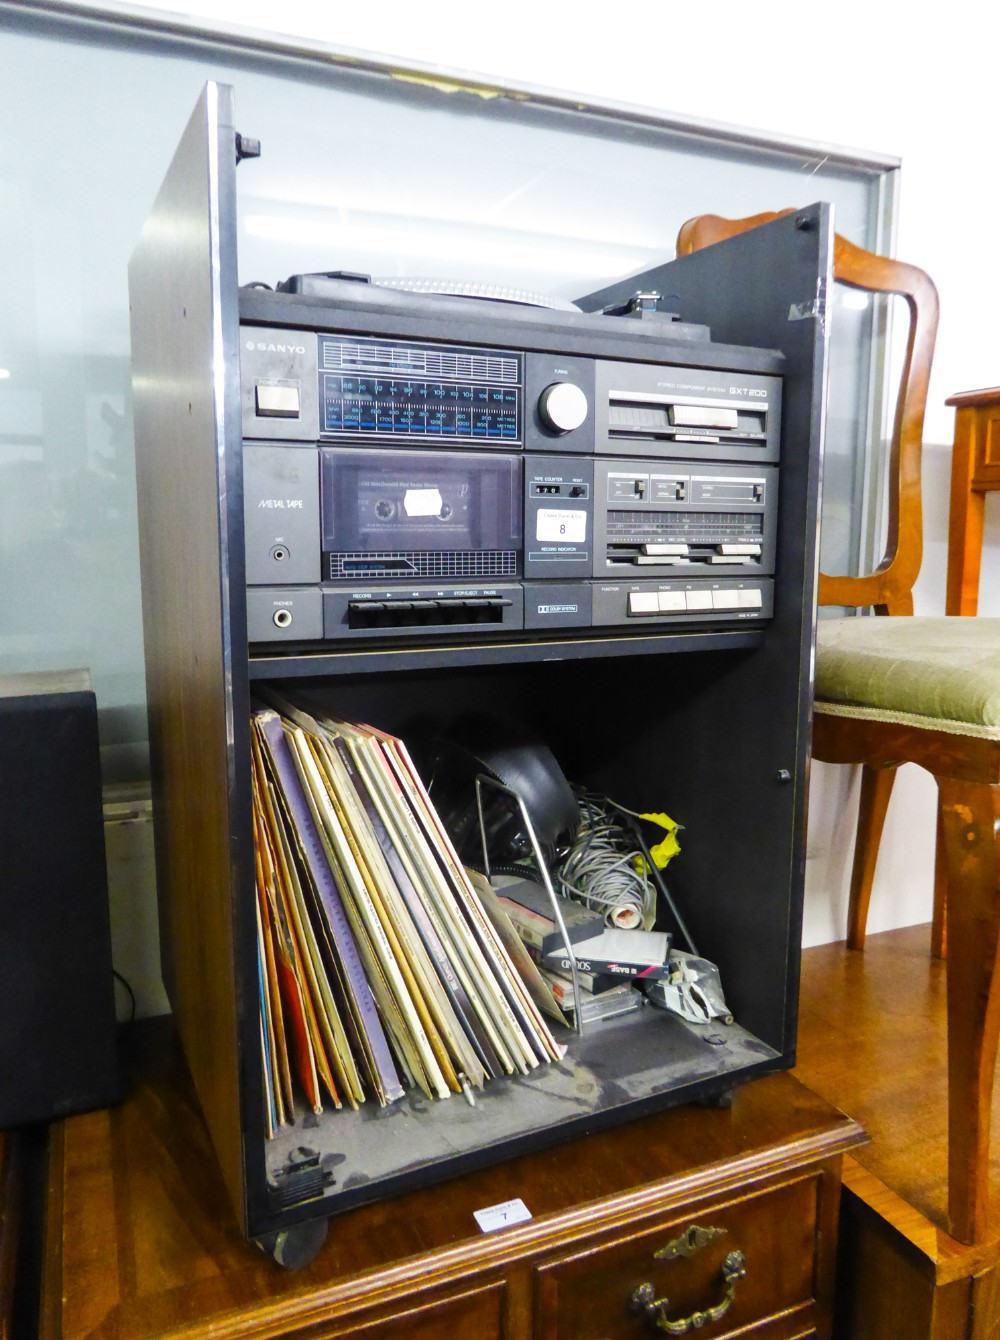 Lot 8 - A STACKING STEREO SYSTEM BY SANYO, WITH GLASS FRONTED CABINET INCLUDING RECORD TURNTABLE AND SOME LP